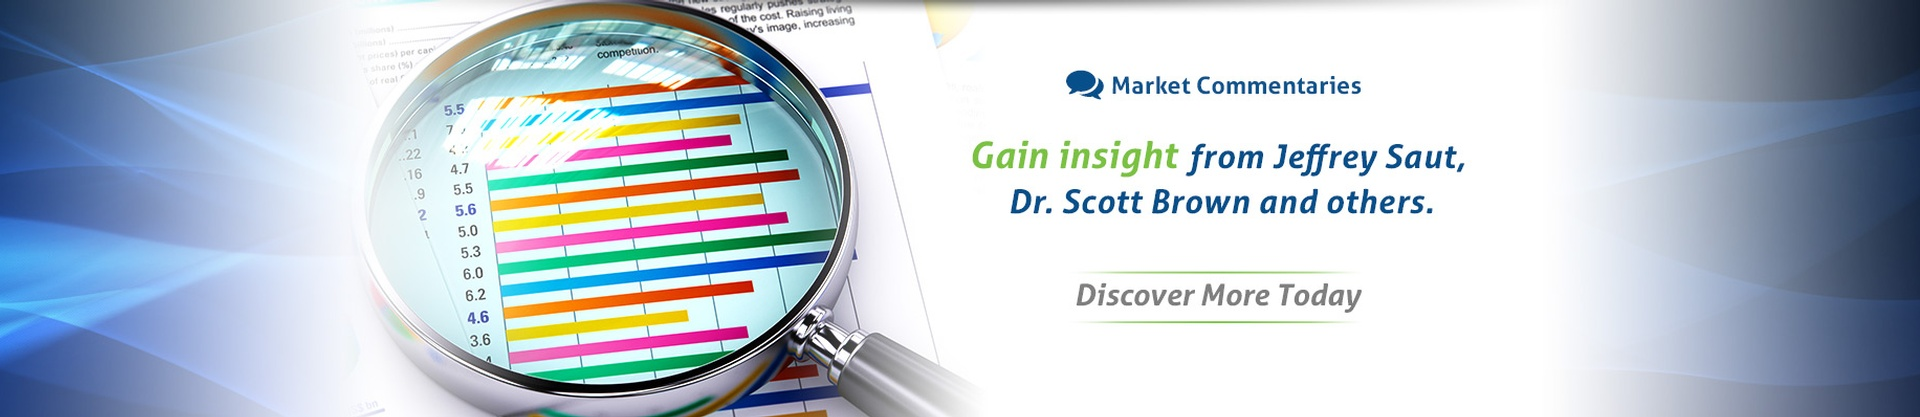 Market Commentaries. Gain insight from Jeffrey Saut, Dr. Scott Brown and others. Discover more today.